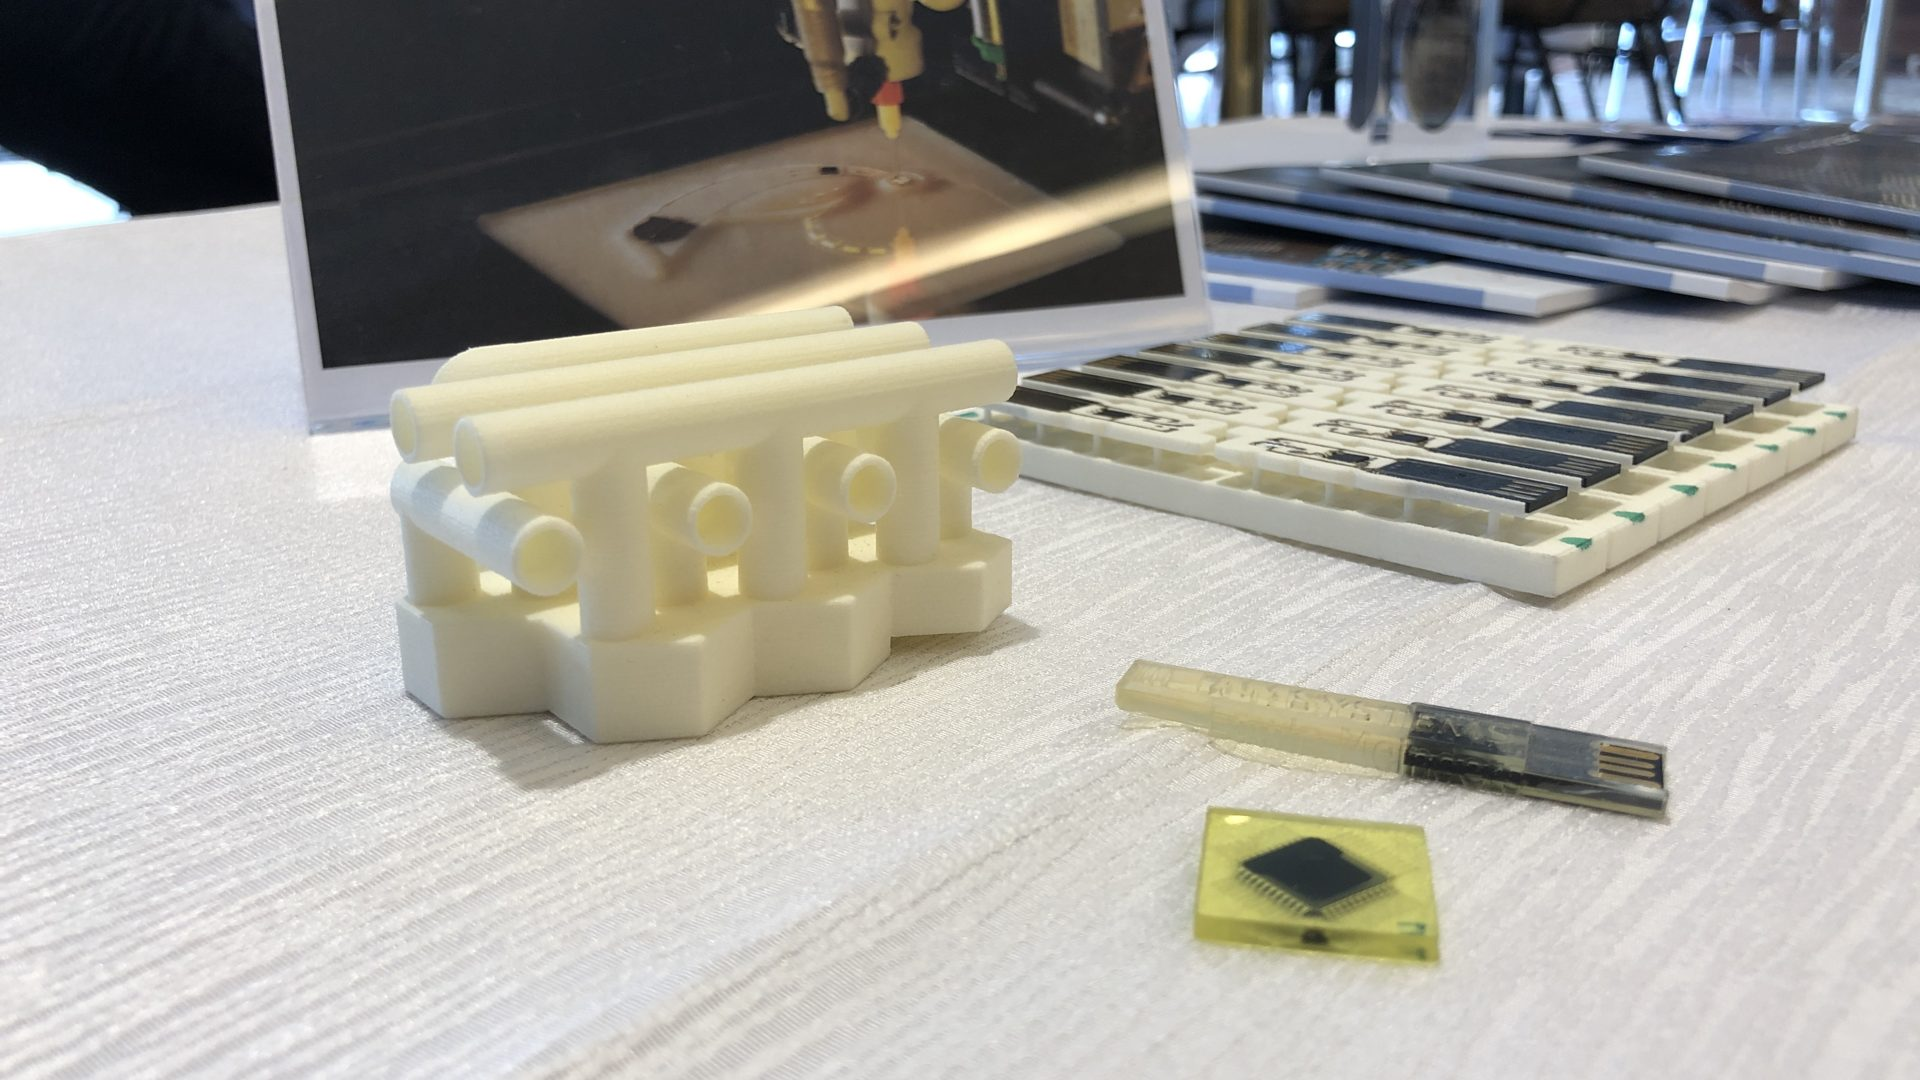 The Food and Pharma Innovation with 3D printers – Is It the World-changing Hardware?